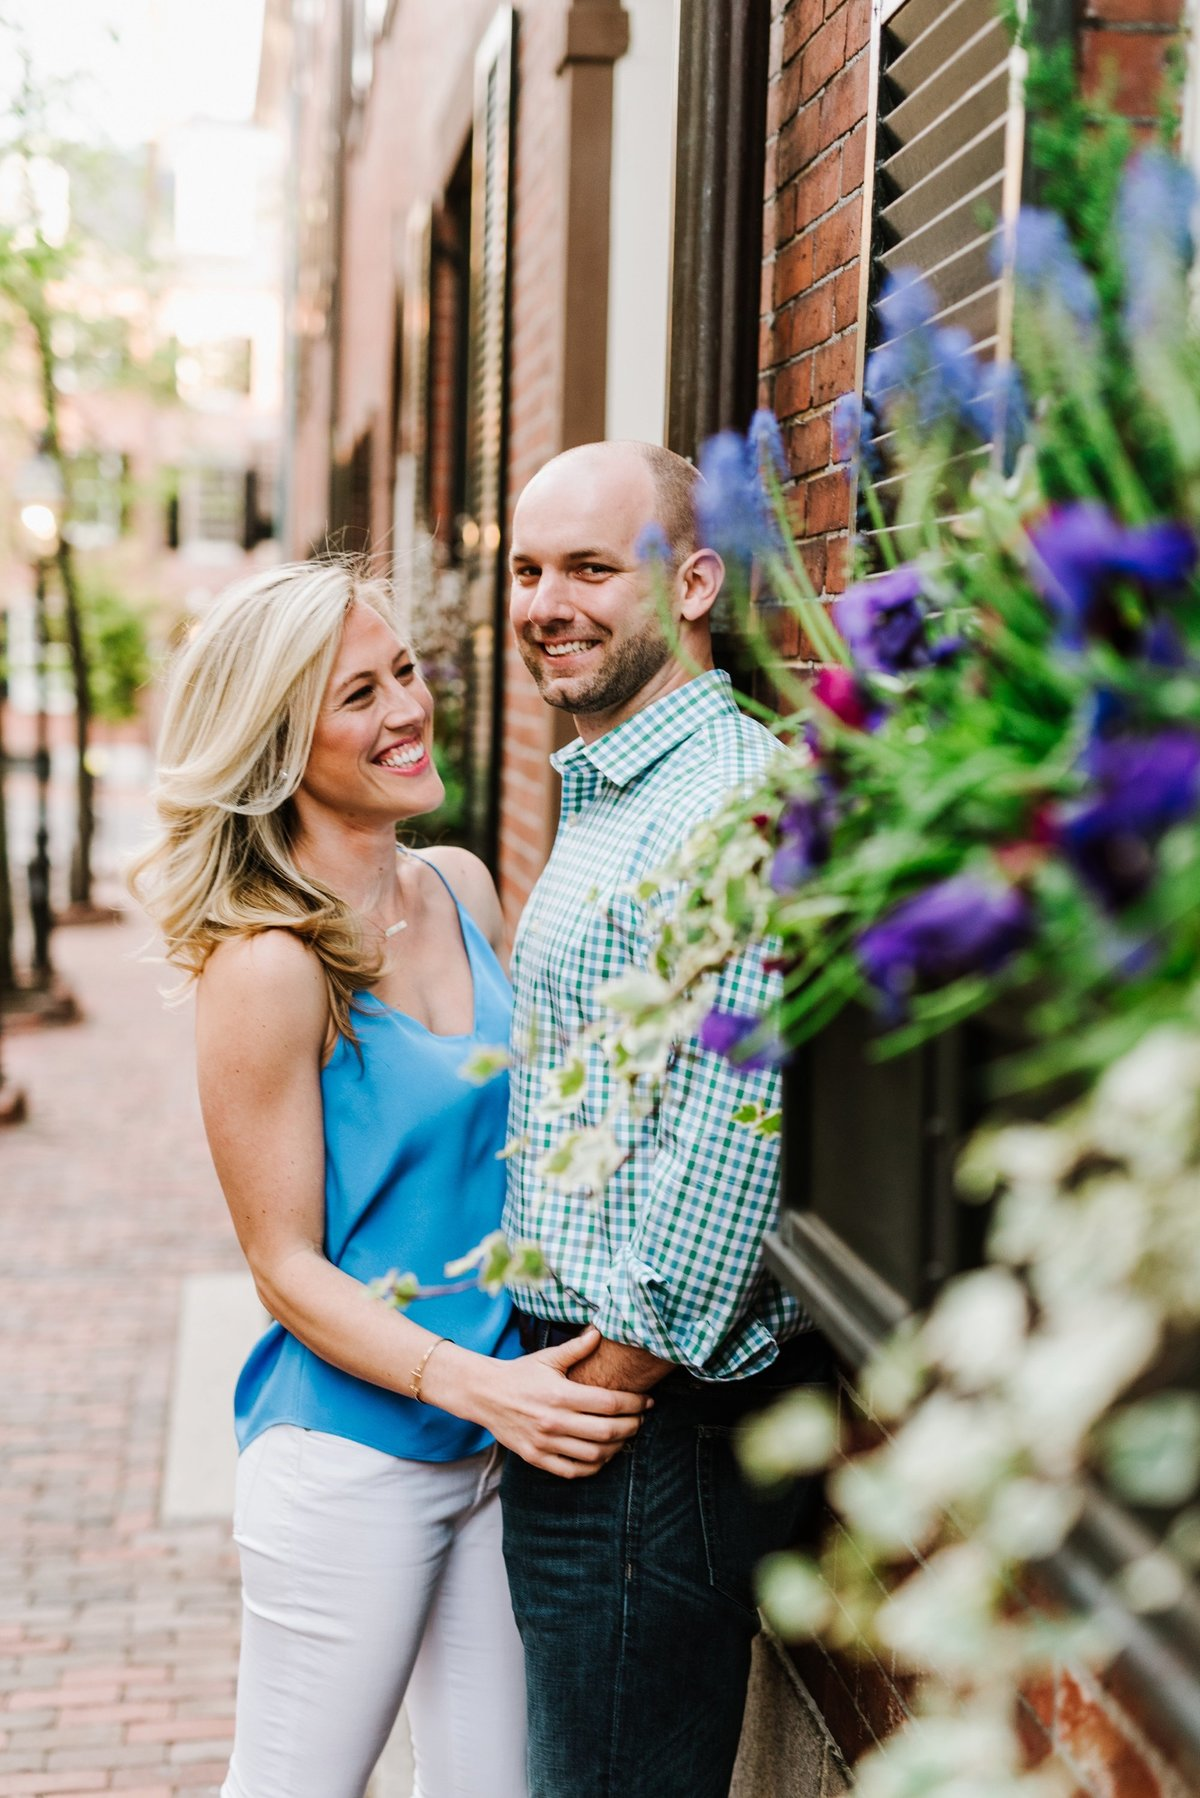 seaport-district-beacon-hill-engagement-session-boston-wedding-photographer-photo_0012